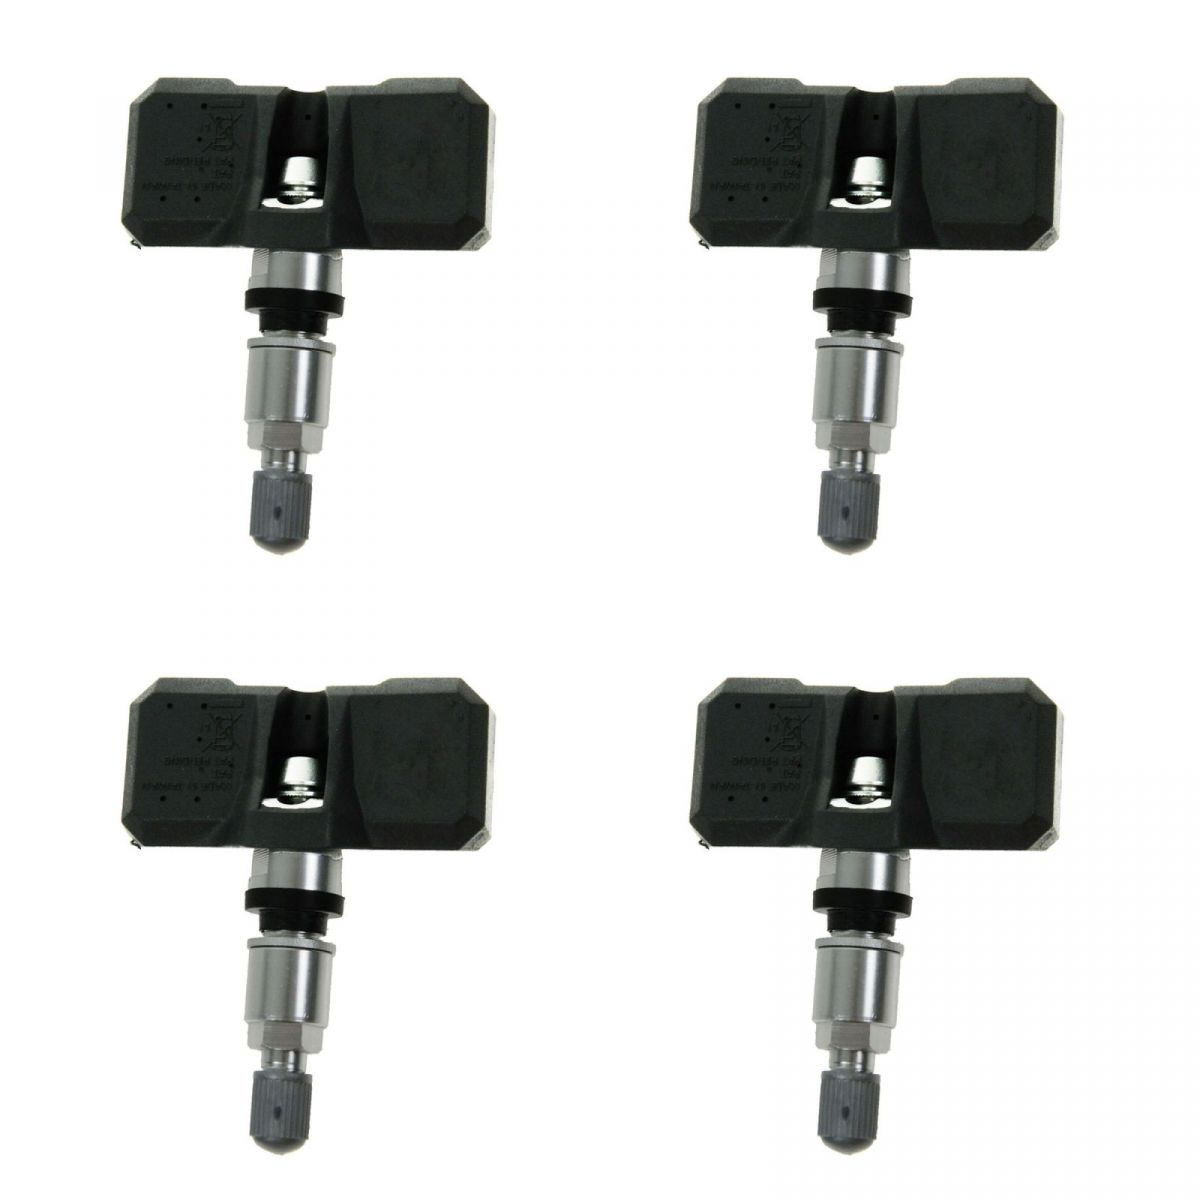 Details about Tire Pressure Sensor Monitoring System TPMS 4 Piece Set Kit  for Chrysler Jeep